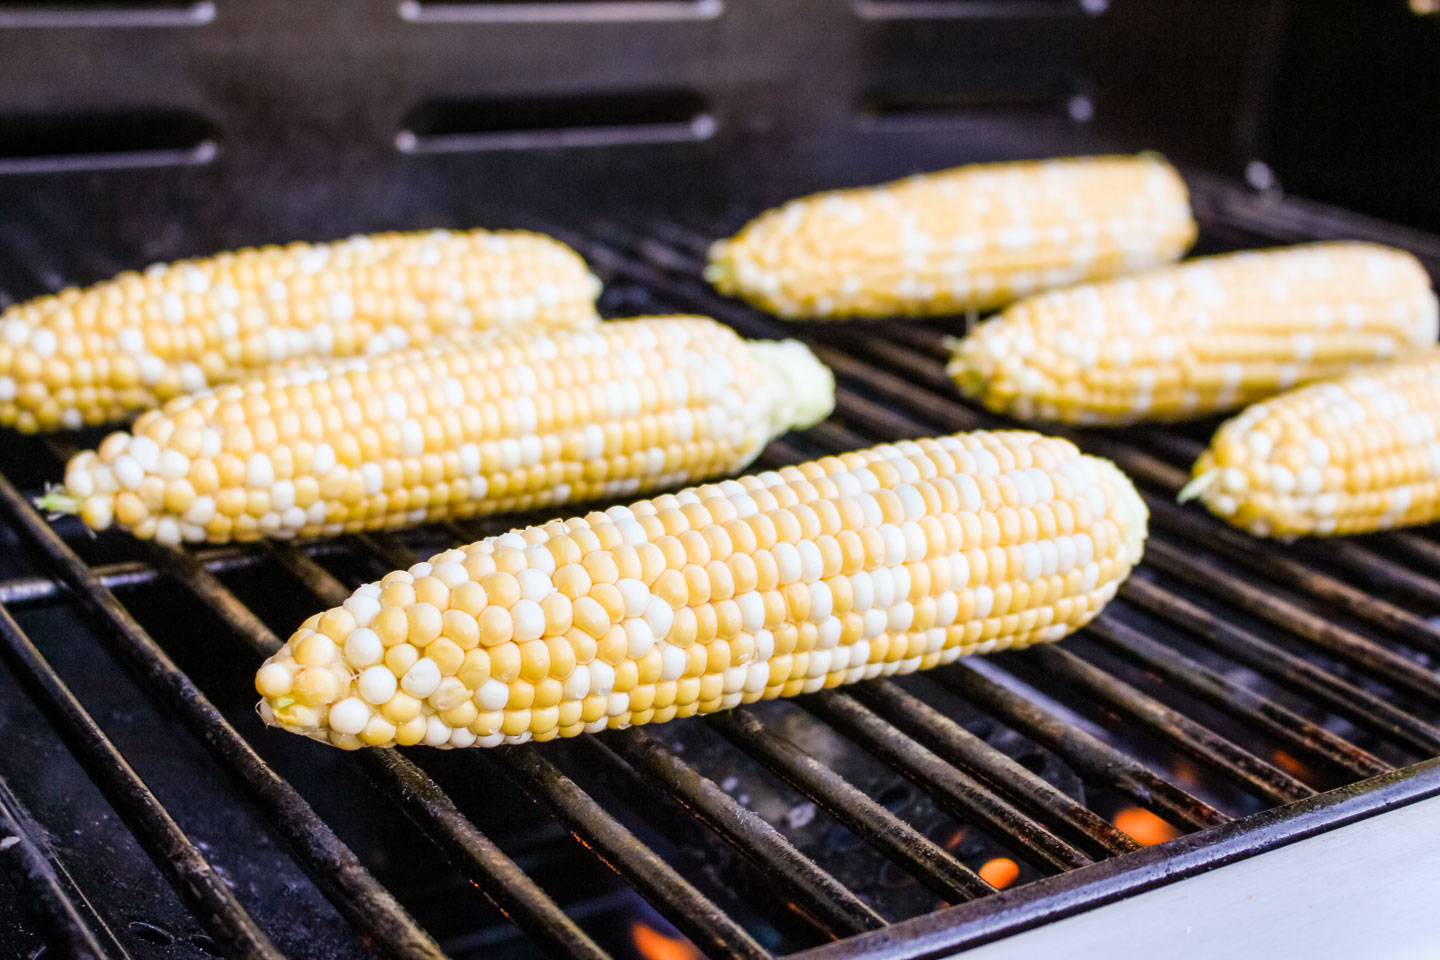 6 ears of husked corn on the cob, just laid on the grill to start cooking.